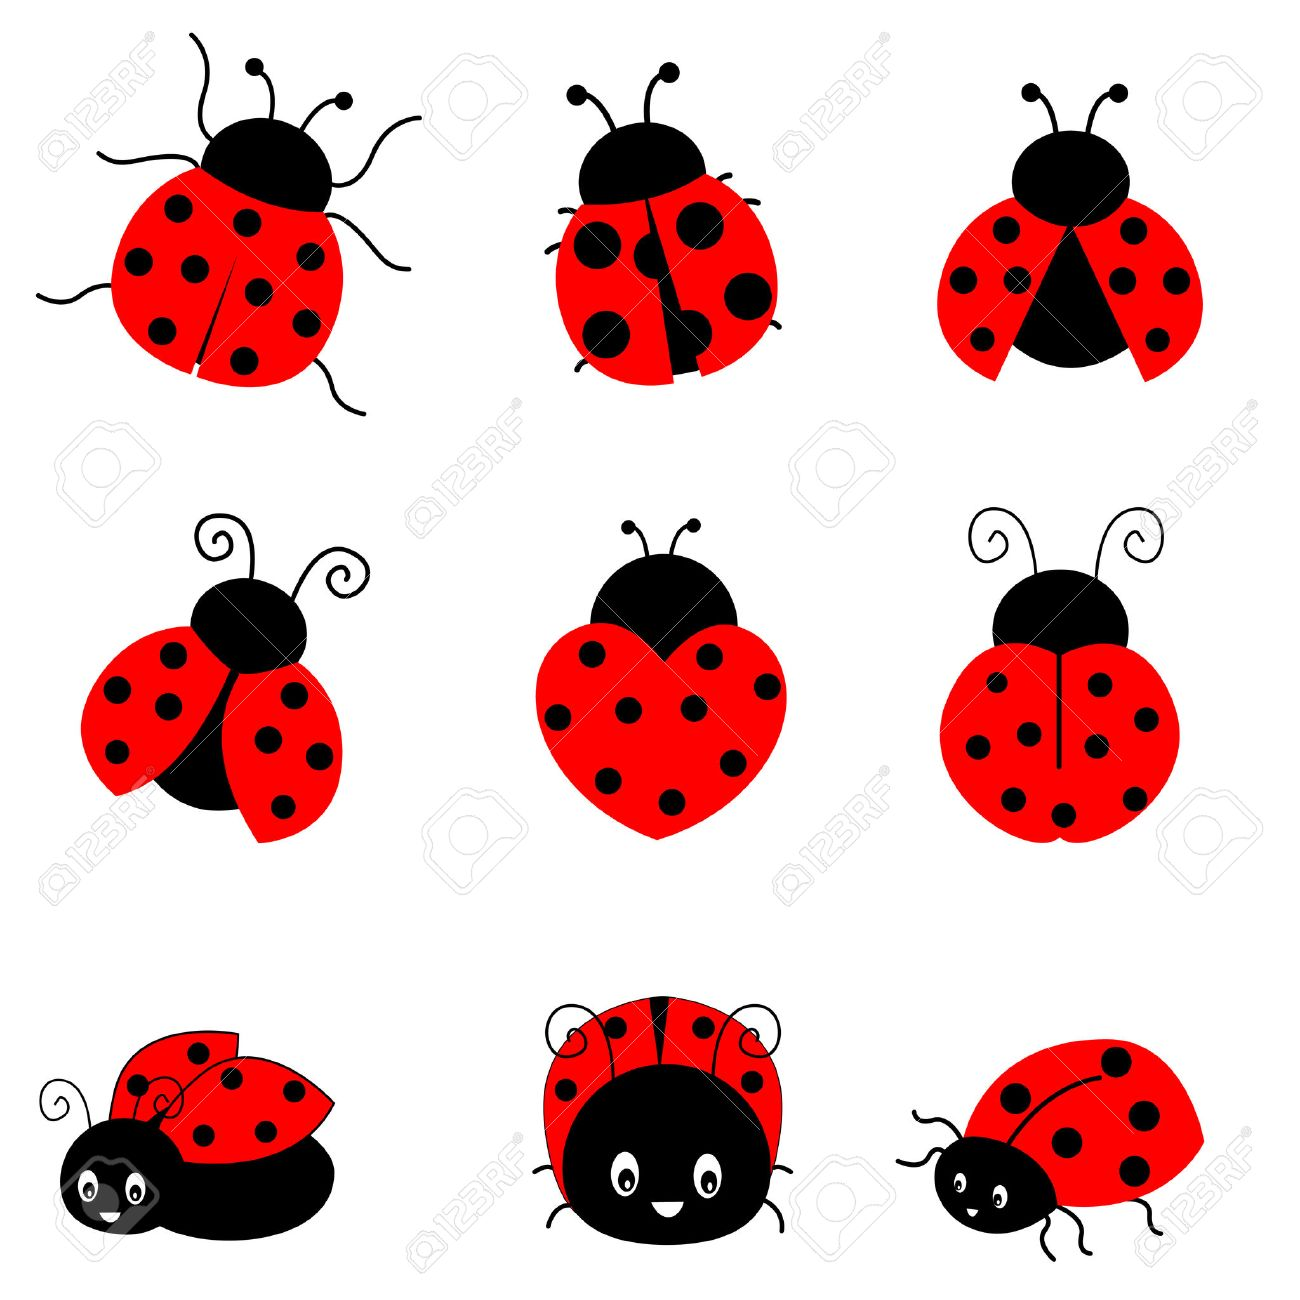 Cute colorful ladybugs clipart collection isolated on white background  Stock Vector - 38748262